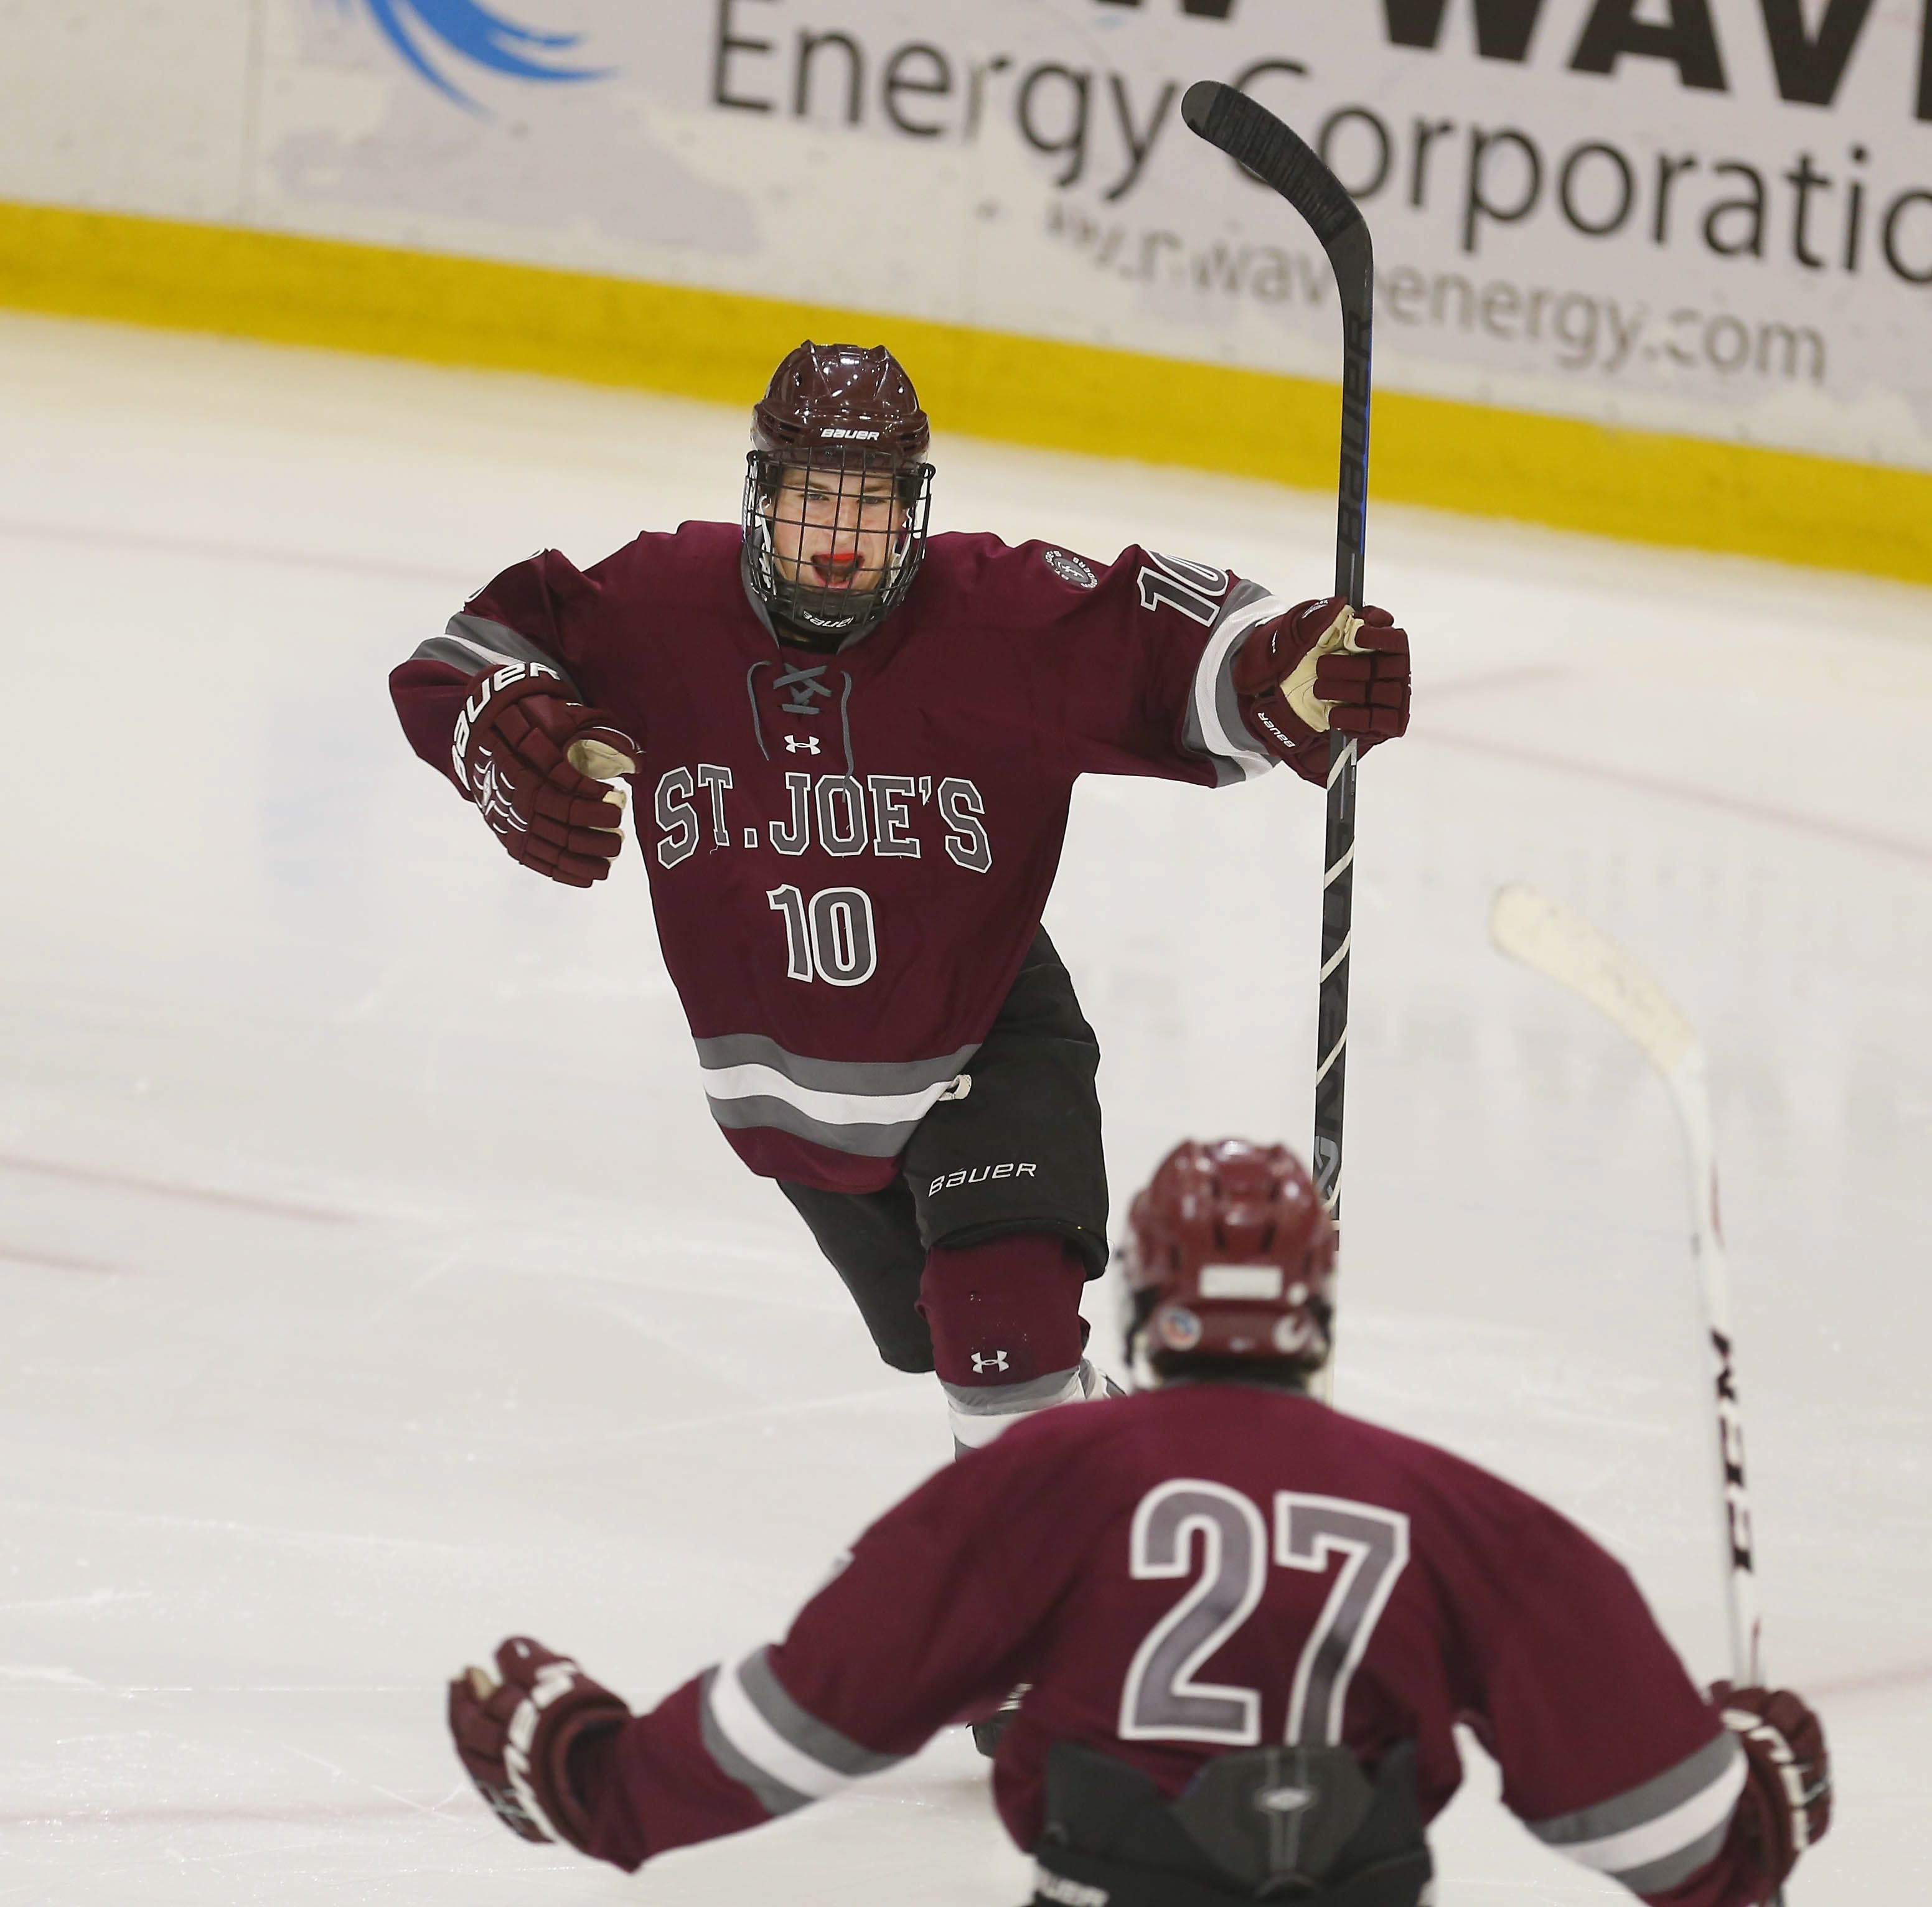 St. Joe's Michael Greco (10) celebrates his team's fourth goal of the game with Nicholas Wahler (27) Monday at HarborCenter.